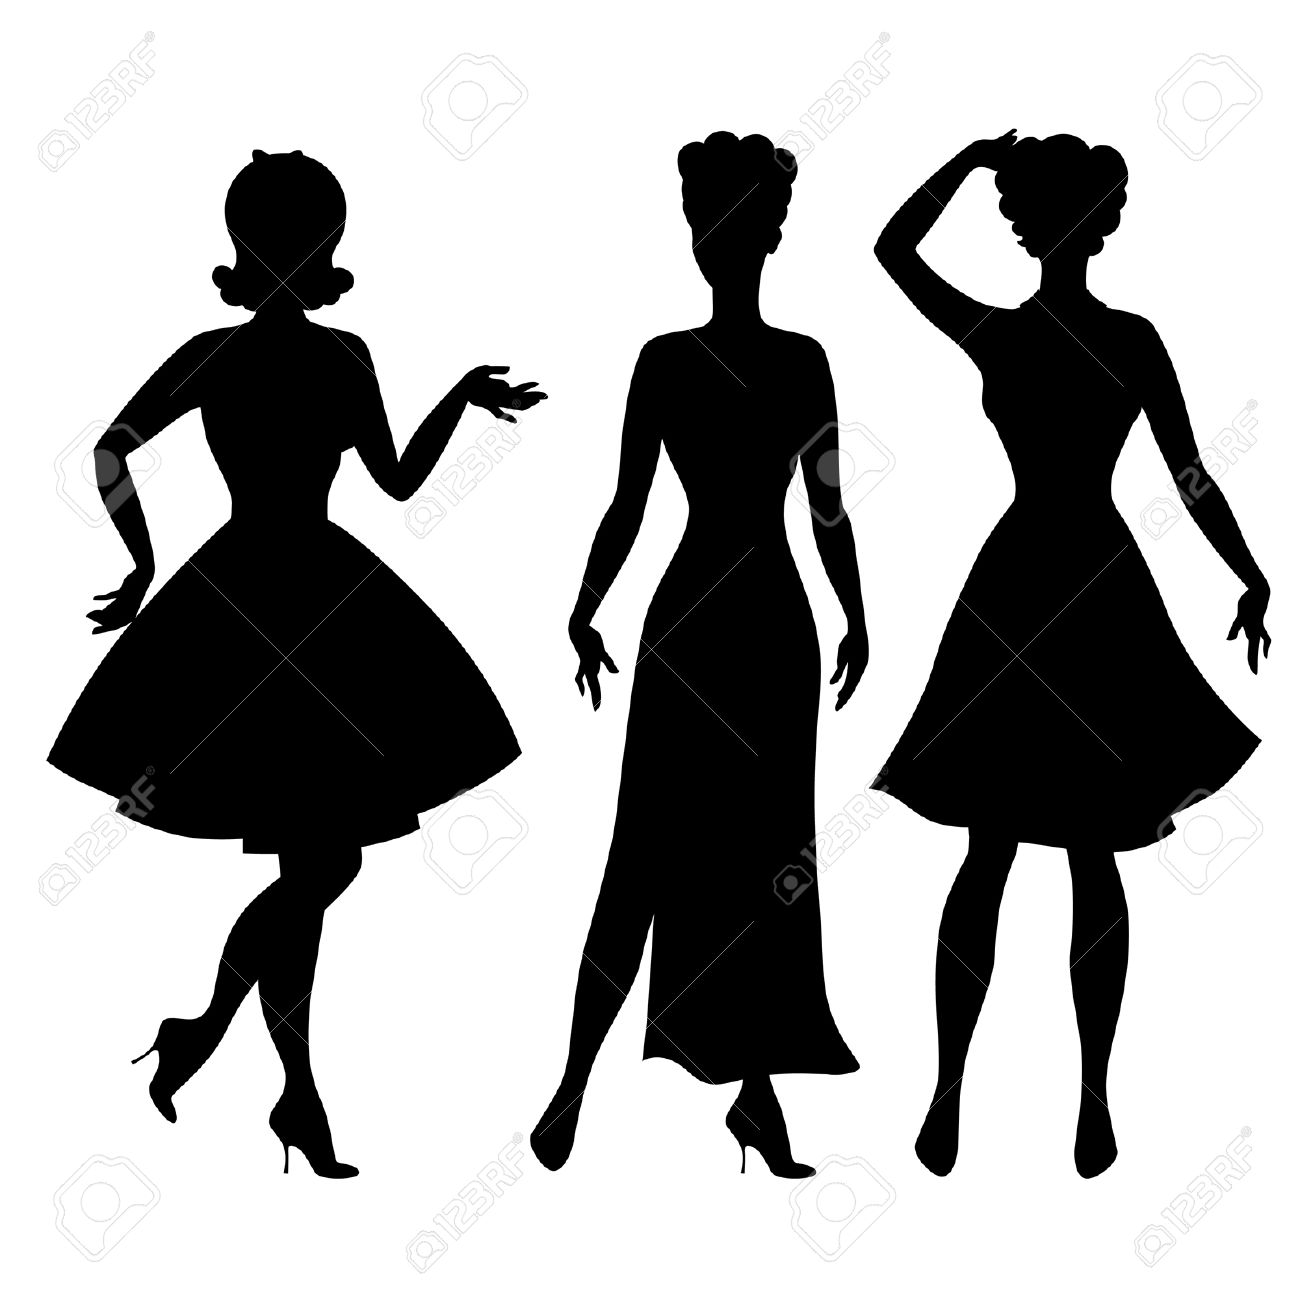 Silhouettes Of Beautiful Pin Up Girls 1950s Style. Royalty Free ...